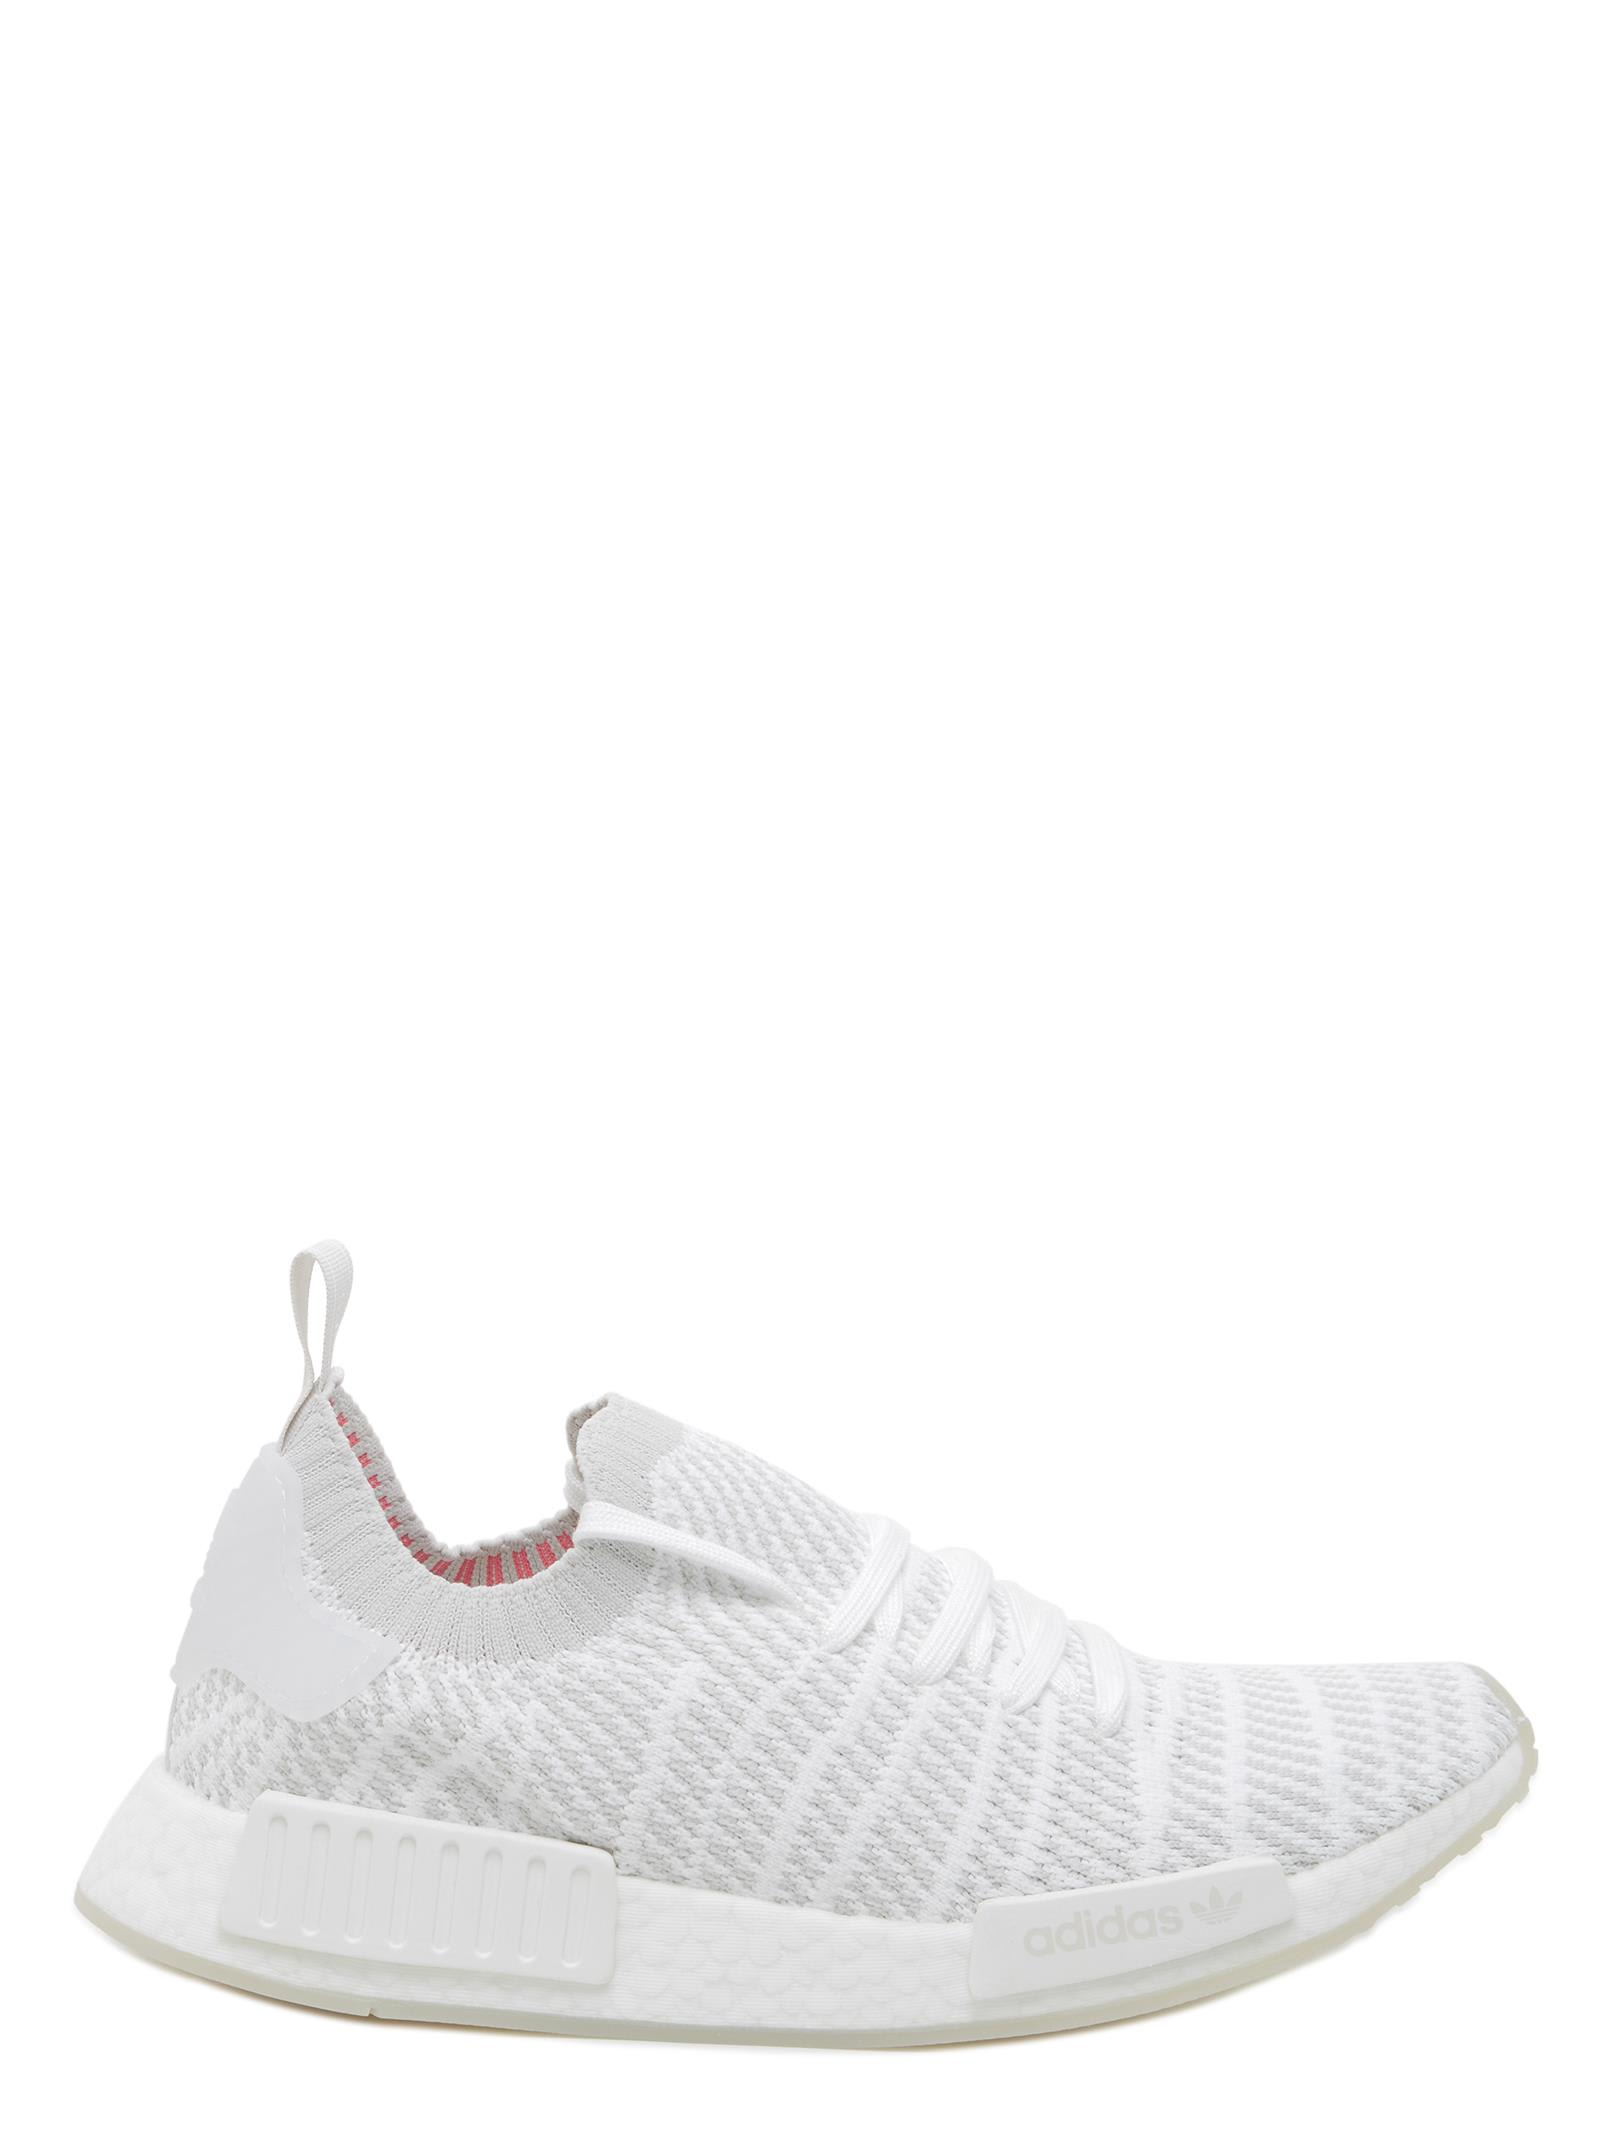 new arrival c0a84 63763 Best price on the market at italist | Adidas Originals Adidas Originals  'nmd R1 Stlt Pk' Shoes